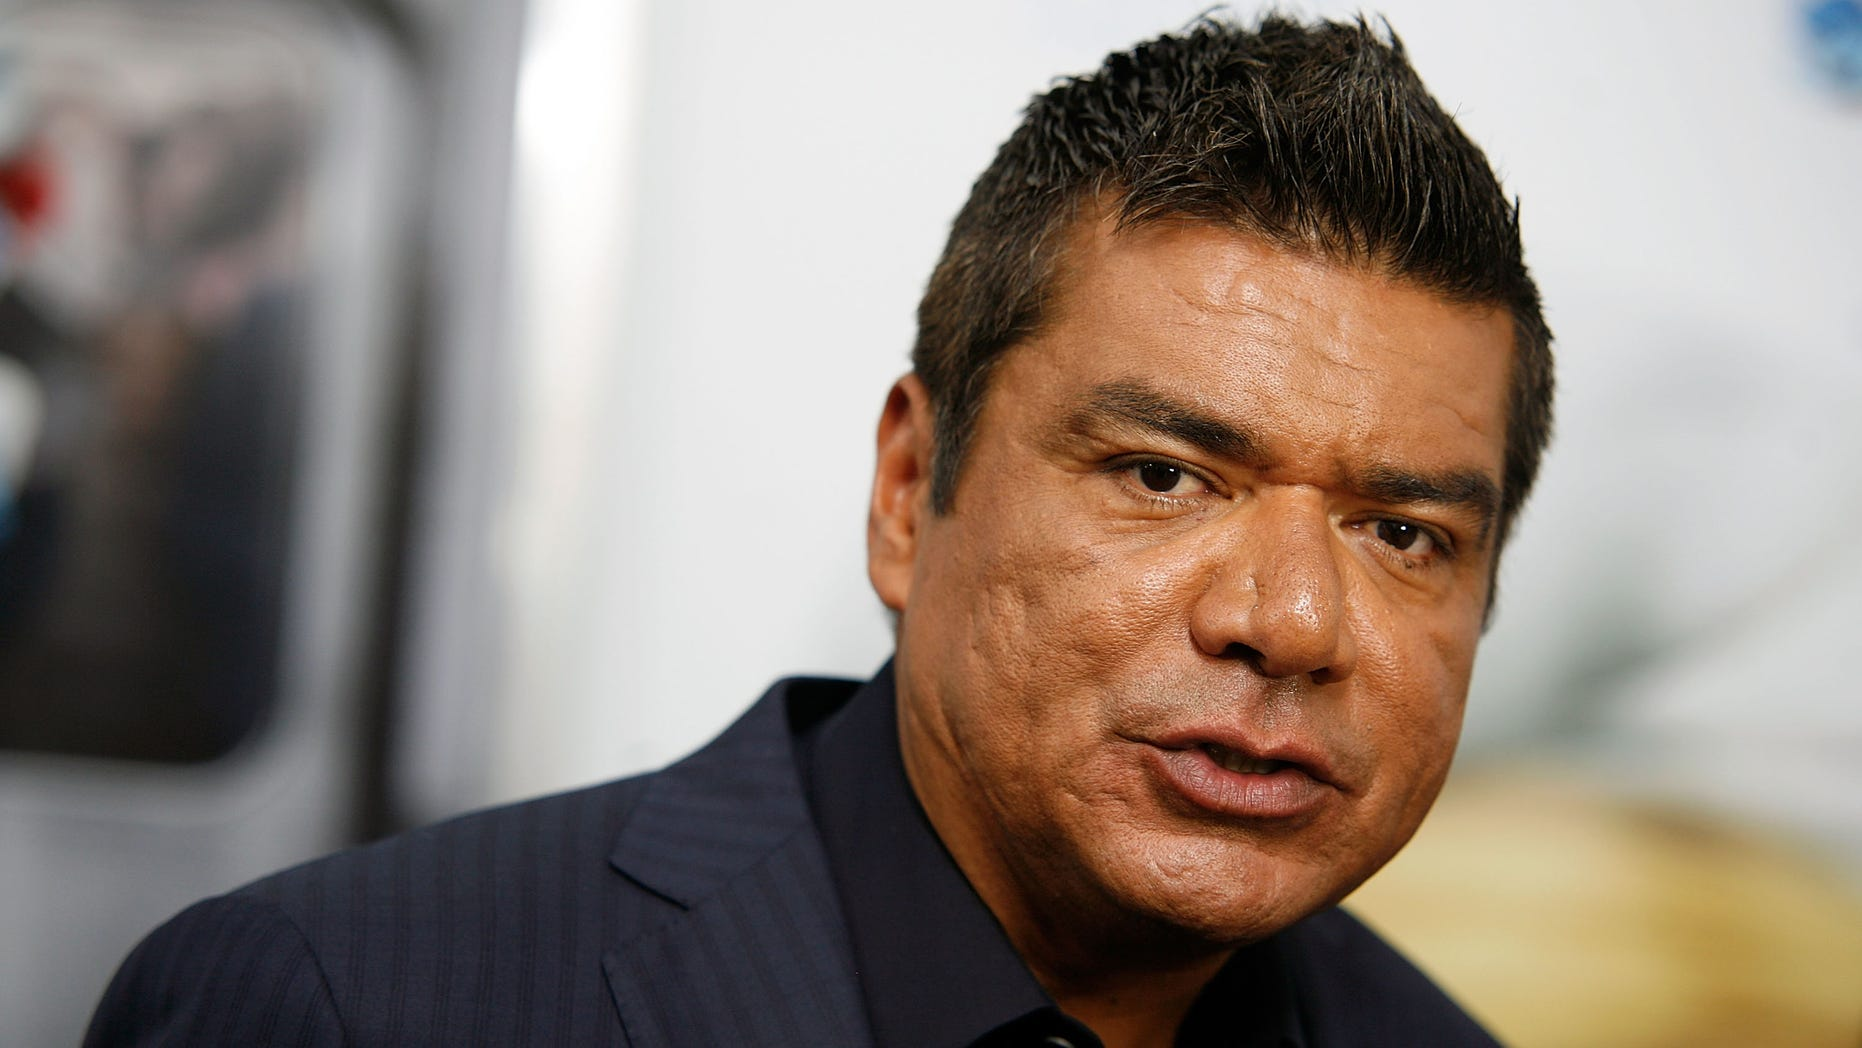 George Lopez has been charged with misdemeanor battery following an altercation with a man in a New Mexico Hooters.